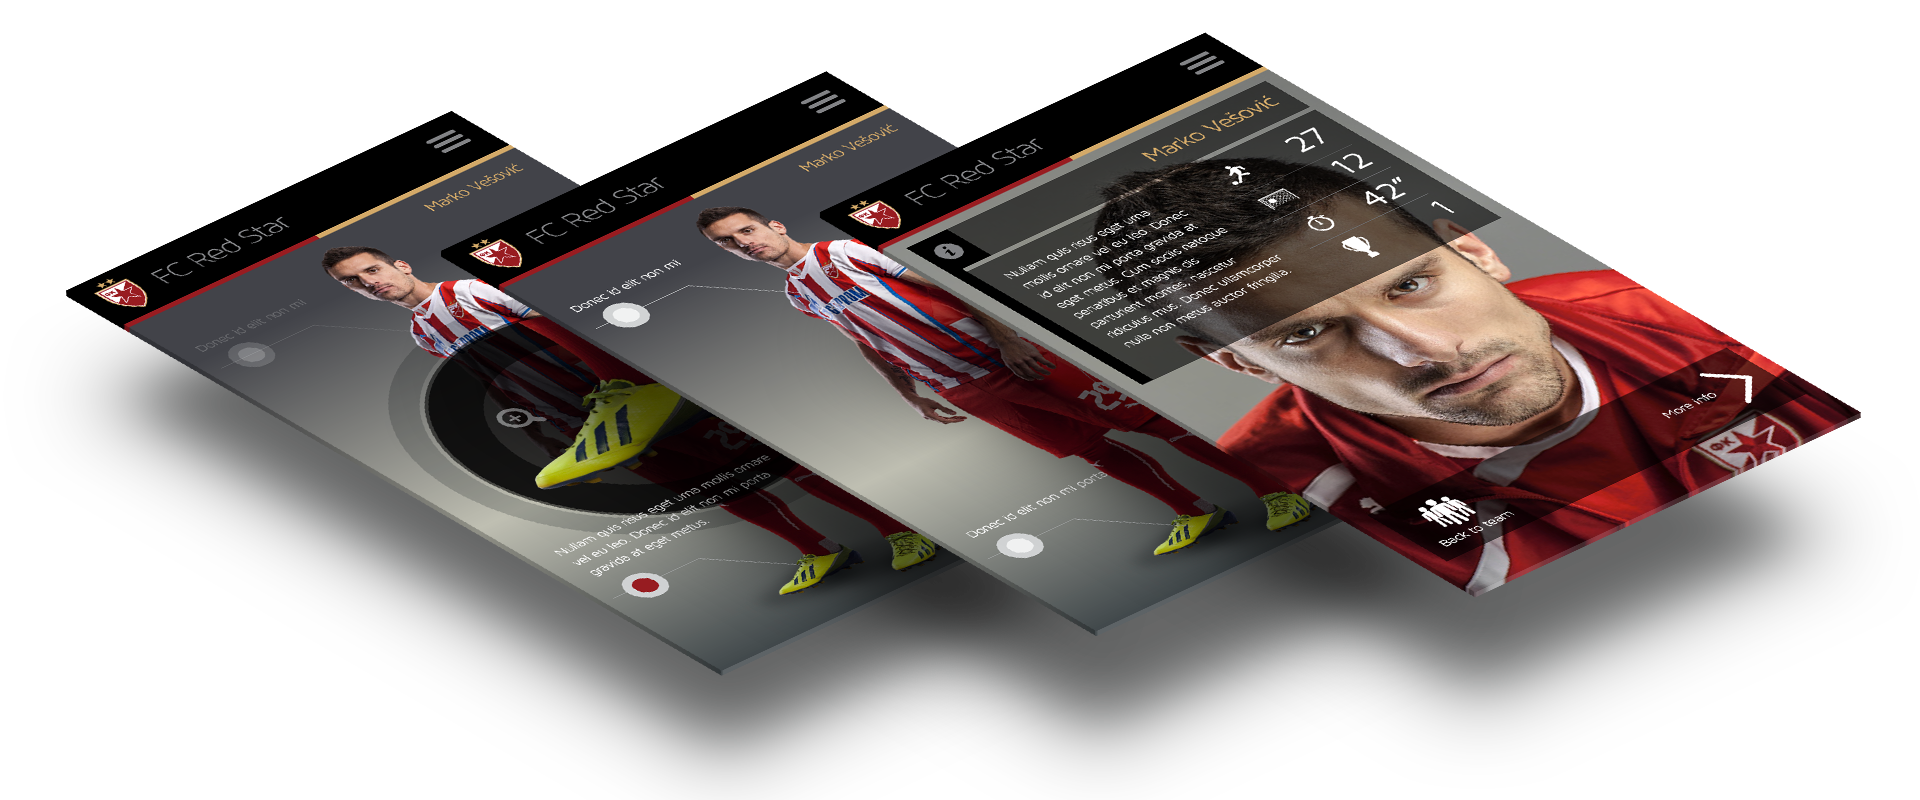 Red Star app screens